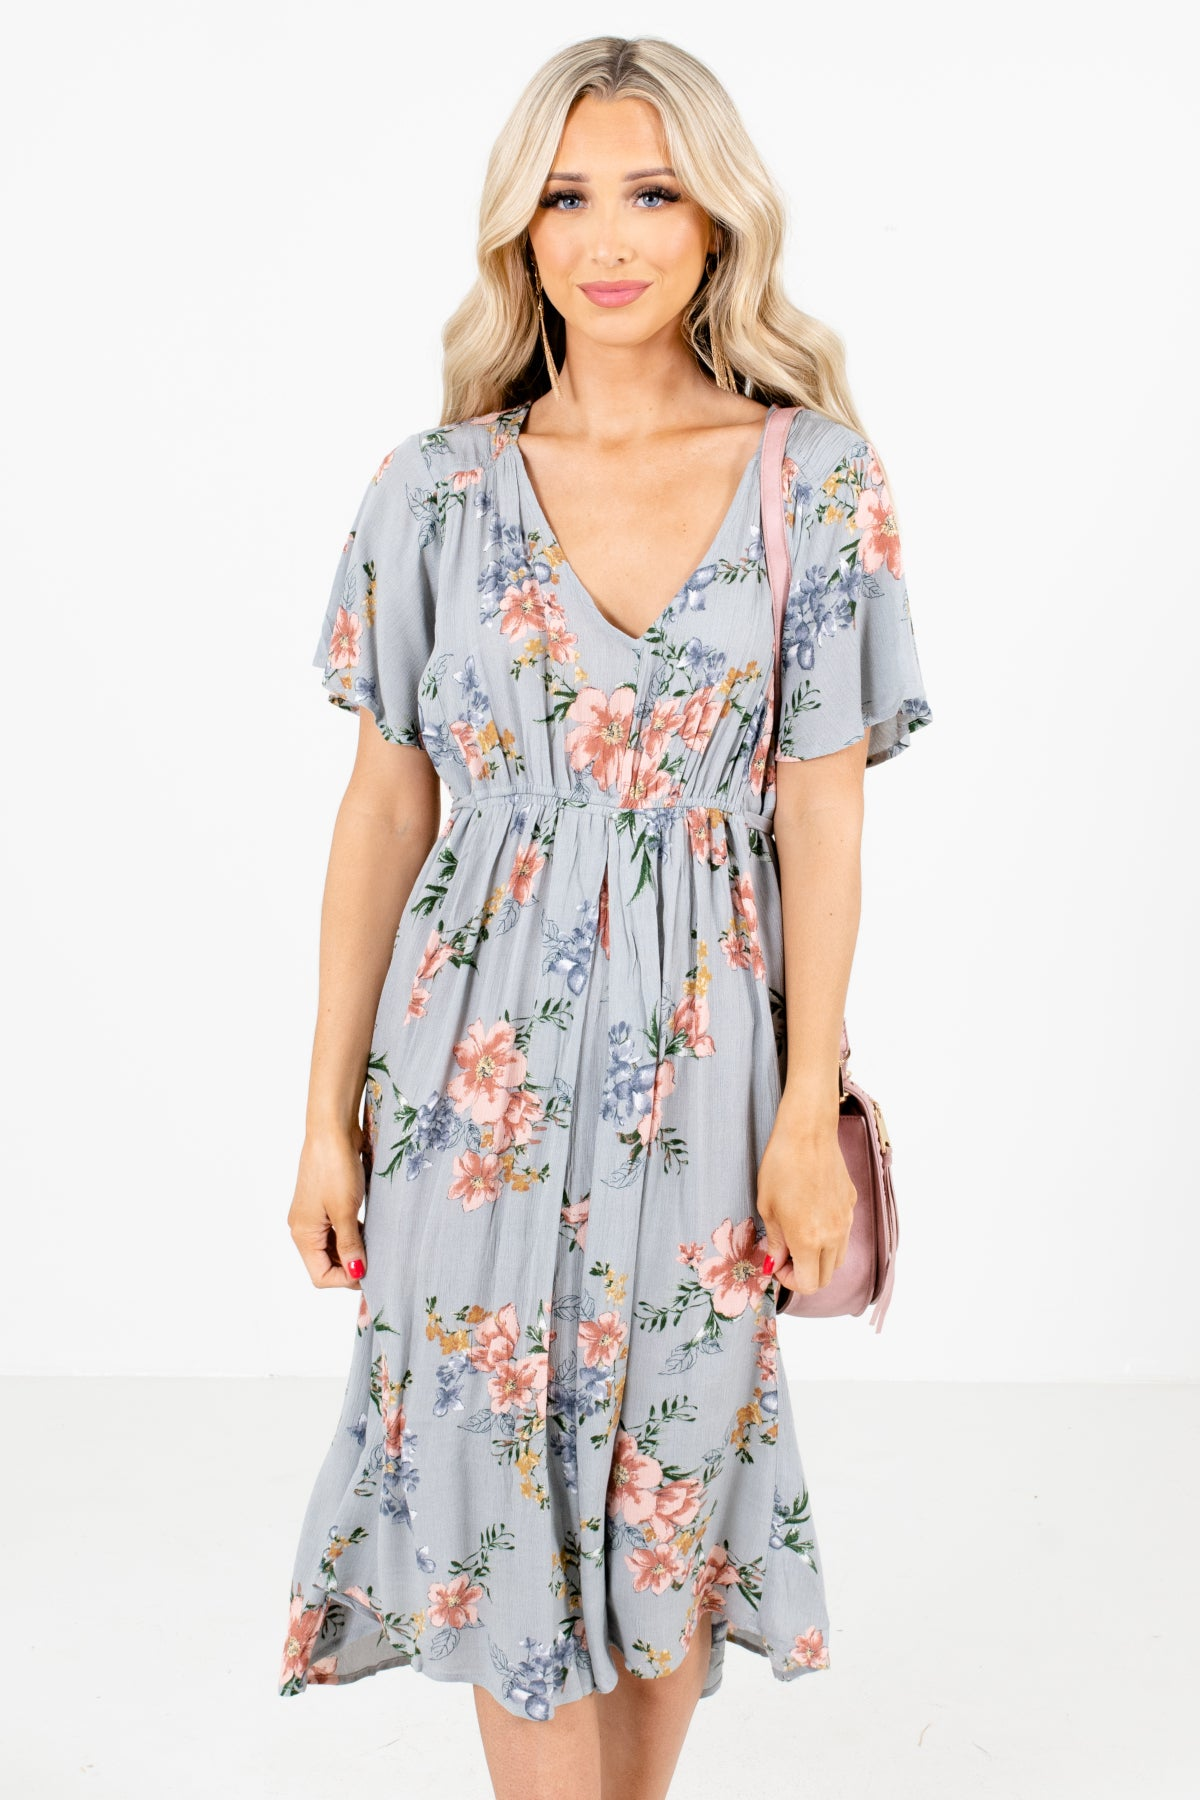 Sage Green Multicolored Floral Patterned Boutique Midi Dresses for Women